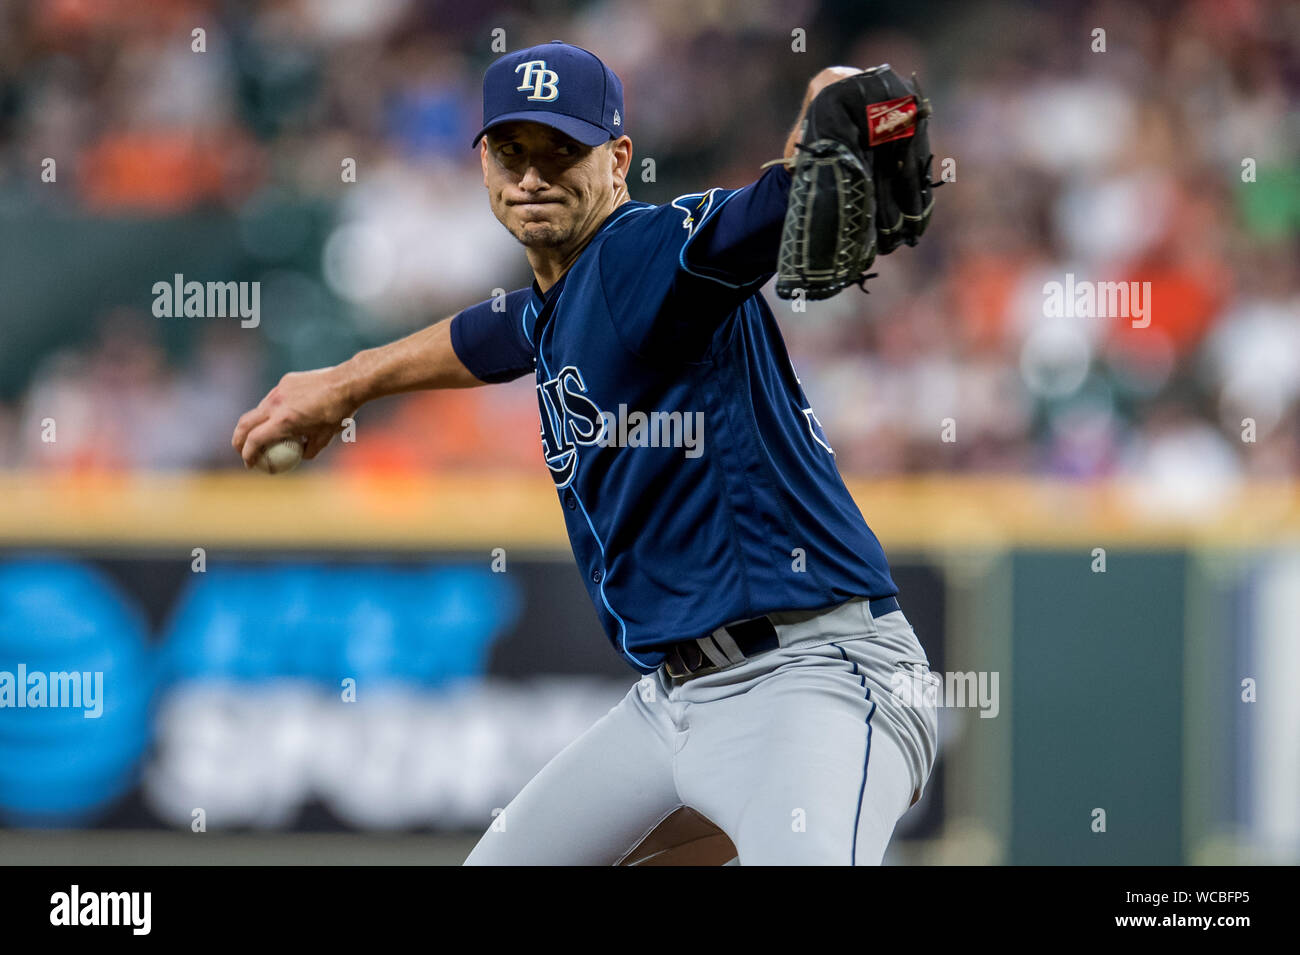 page 2 morton smith high resolution stock photography and images alamy https www alamy com houston texas usa 27th aug 2019 tampa bay rays starting pitcher charlie morton pitches against the houston astros in the 2nd inning at minute maid park in houston on tuesday august 27 2019 photo by trask smithupi credit upialamy live news image265785245 html